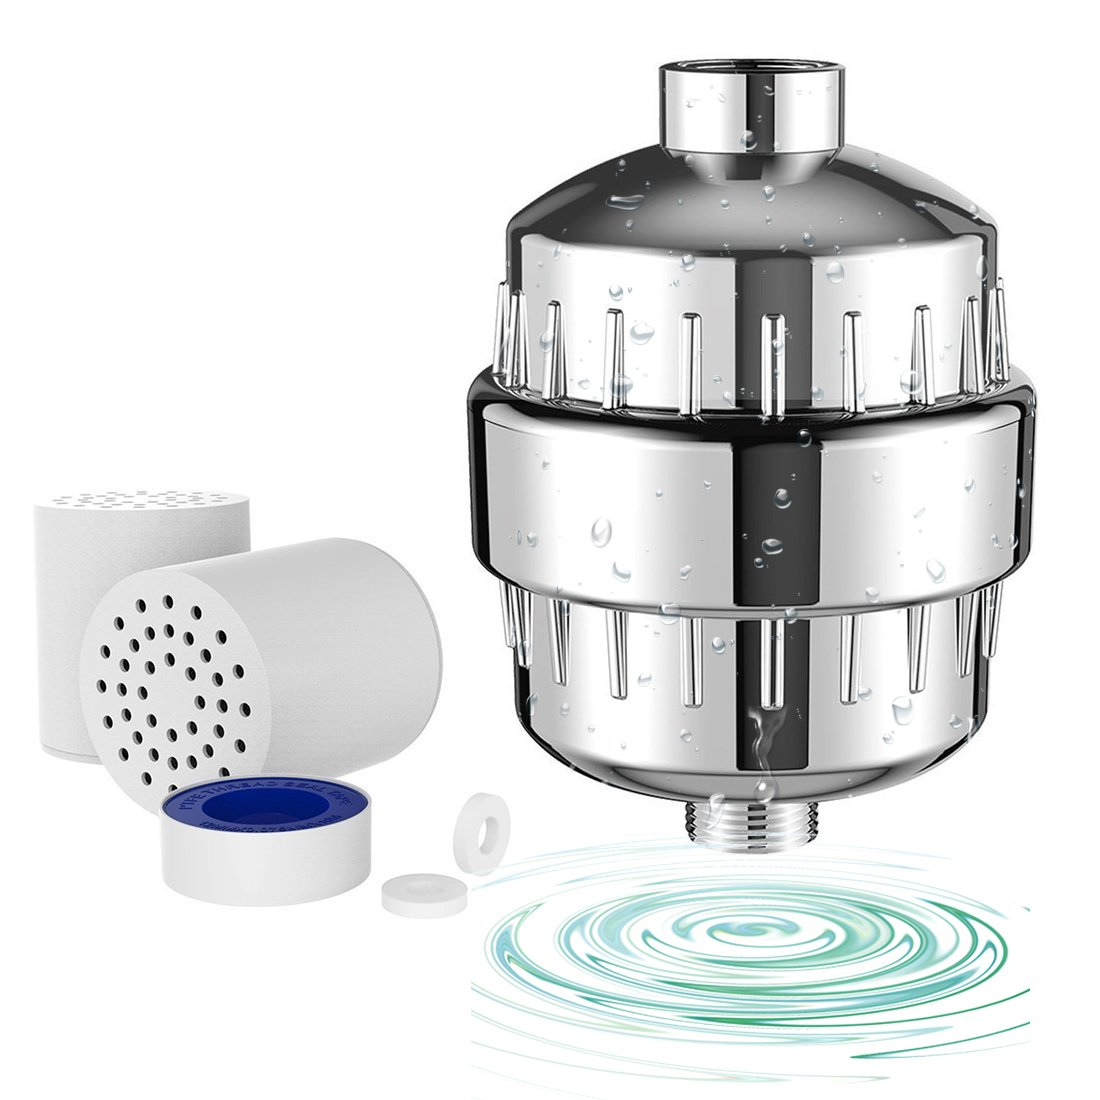 Sobotoo Shower Filter,10-Stage Shower Water Filter with 2 Cartridges-For Any Shower Head and Handheld Shower -Removes Chlorine,Impurities&Unpleasant Odors from Water- Boosts Skin and Hair Health